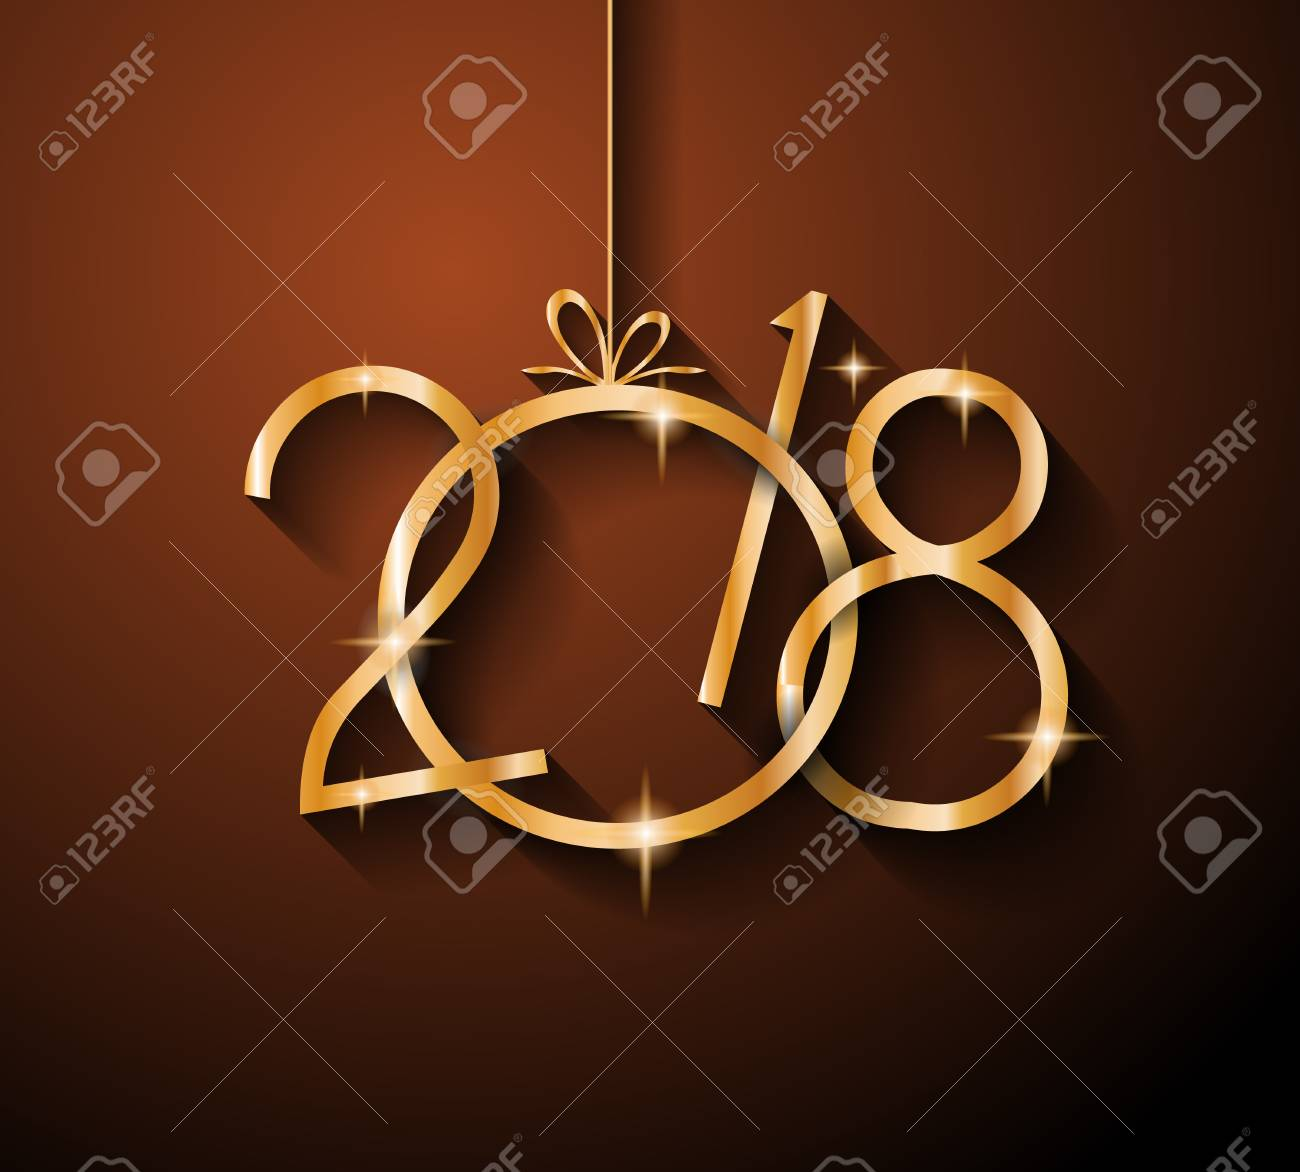 2018 Happy New Year Background For Your Seasonal Flyers And